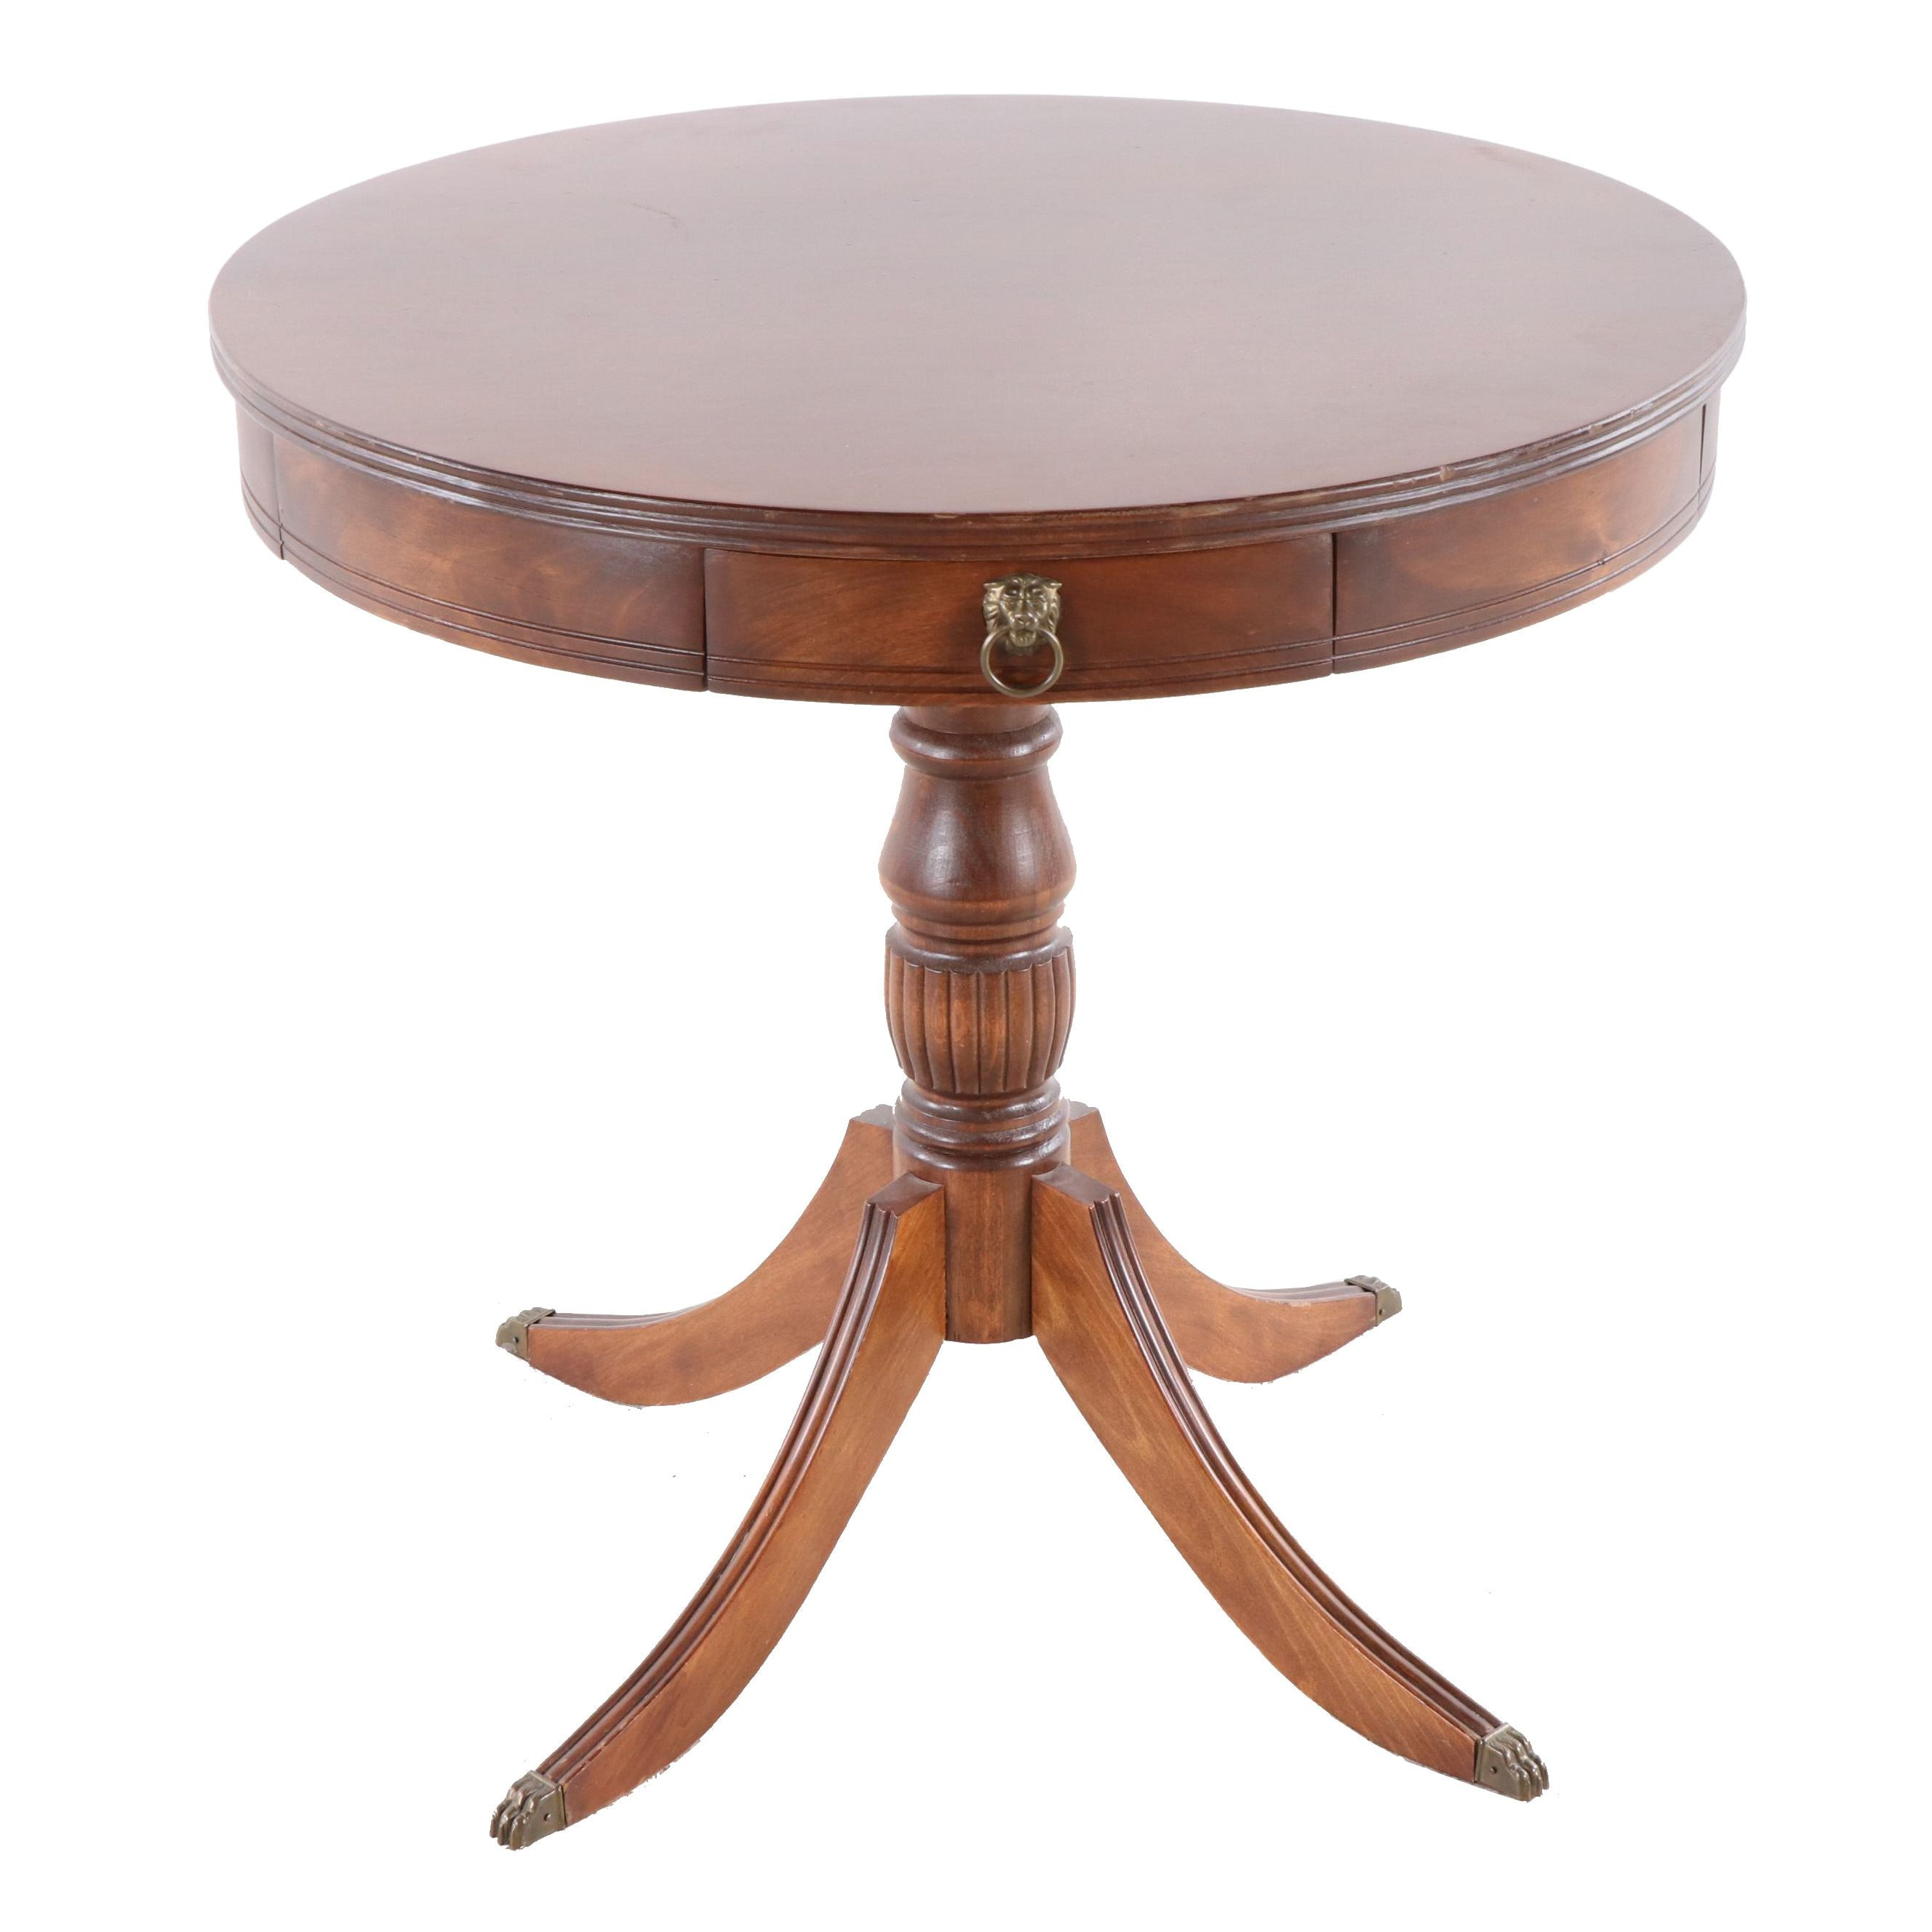 Federal Style Mahogany Drum Table, Mid-20th Century